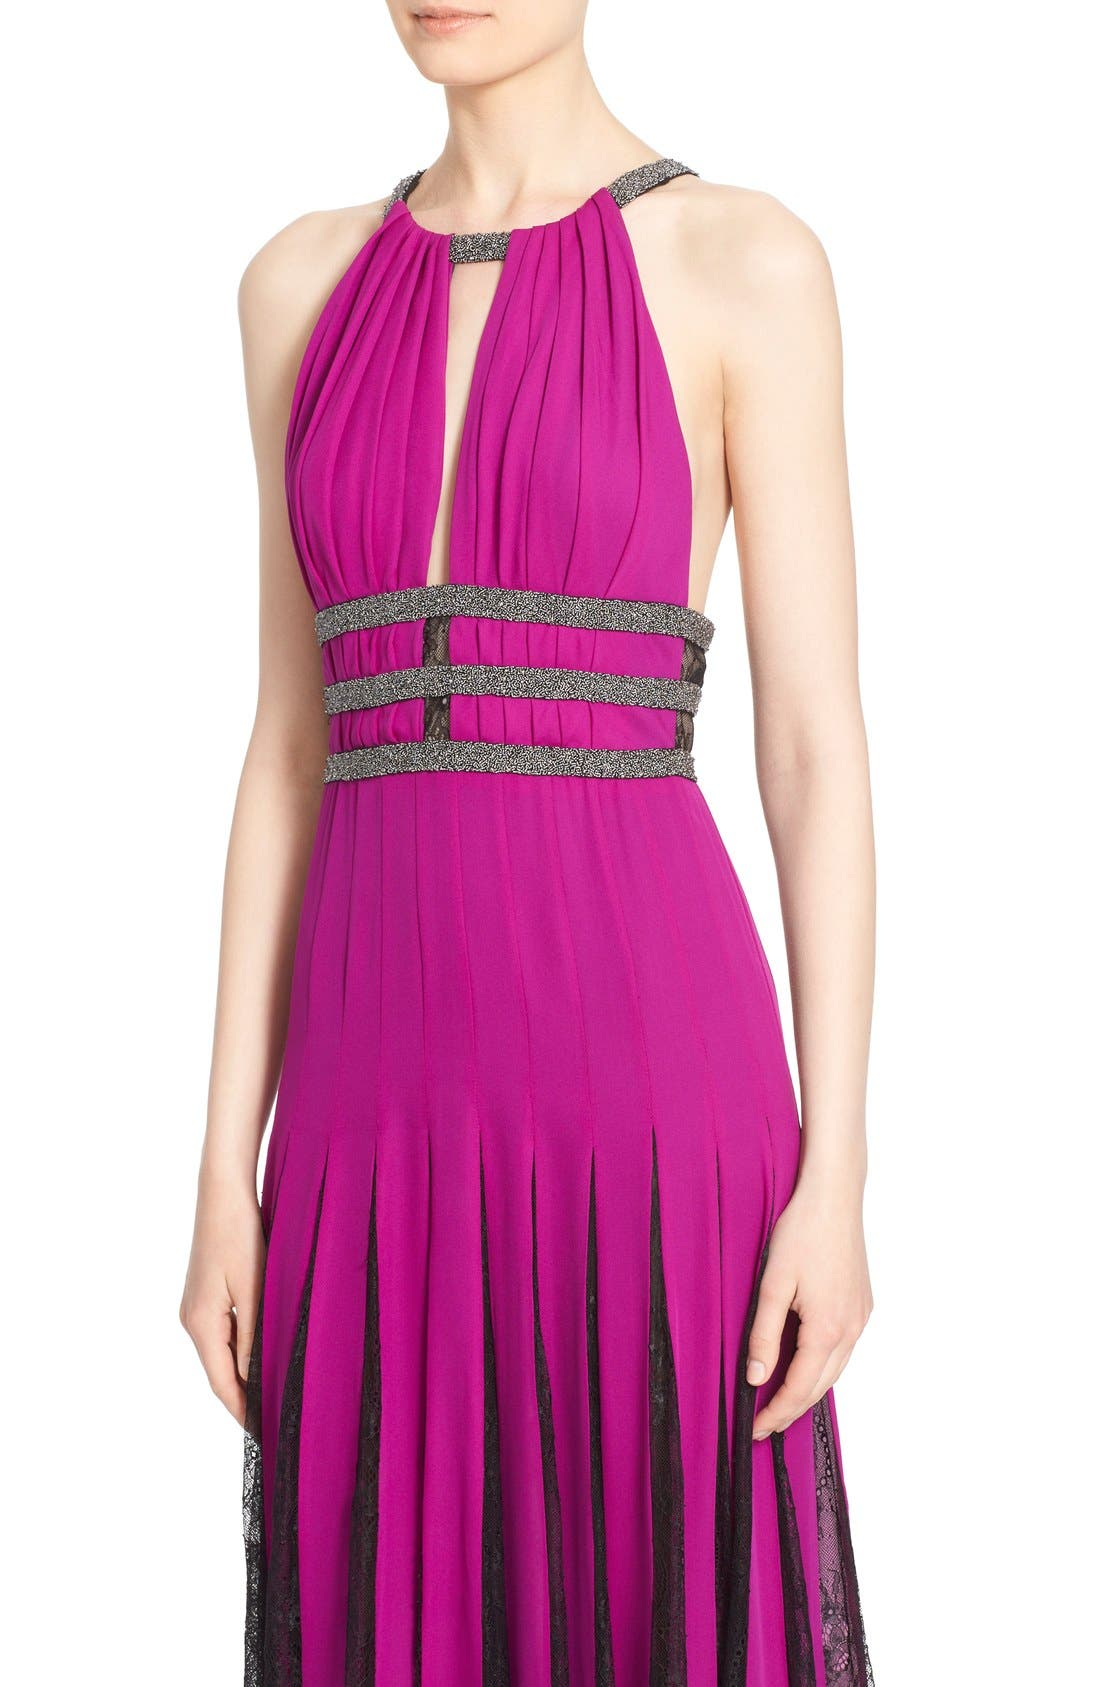 Couture Silk Halter Gown with Lace Pleats,                             Alternate thumbnail 6, color,                             Orchid/ Smoke